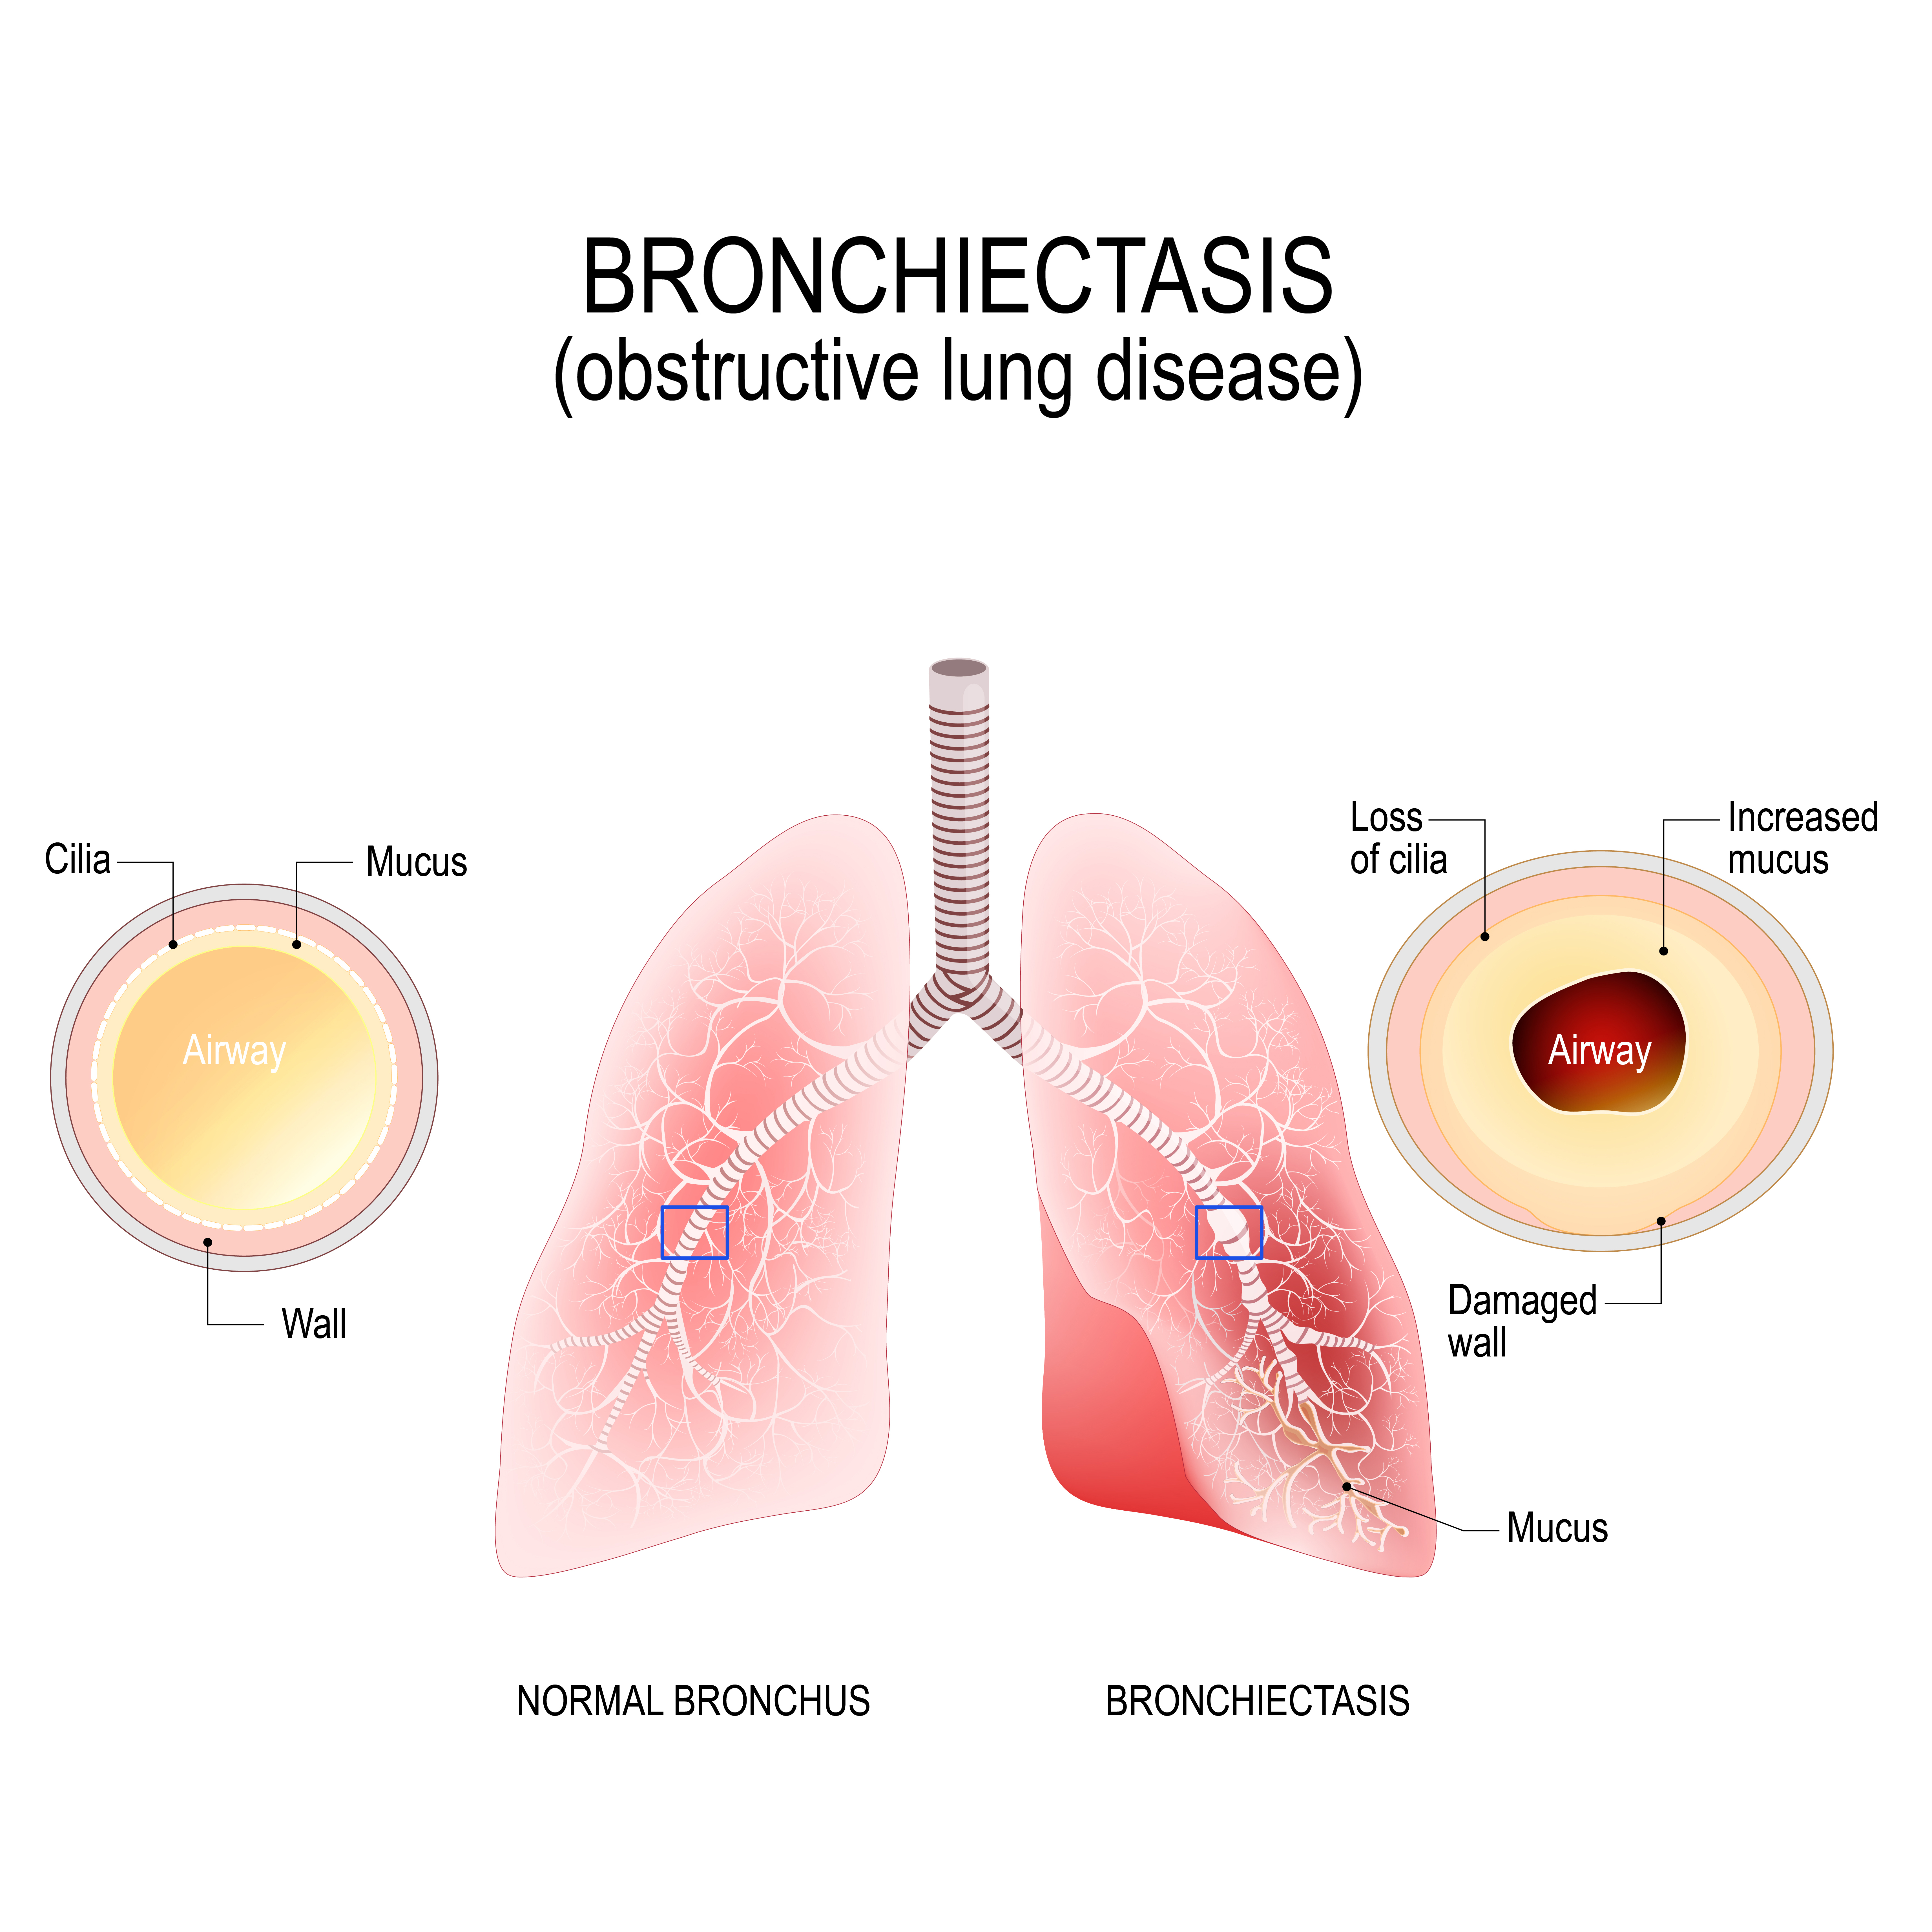 Bronchiectasis: obstructive lung disease